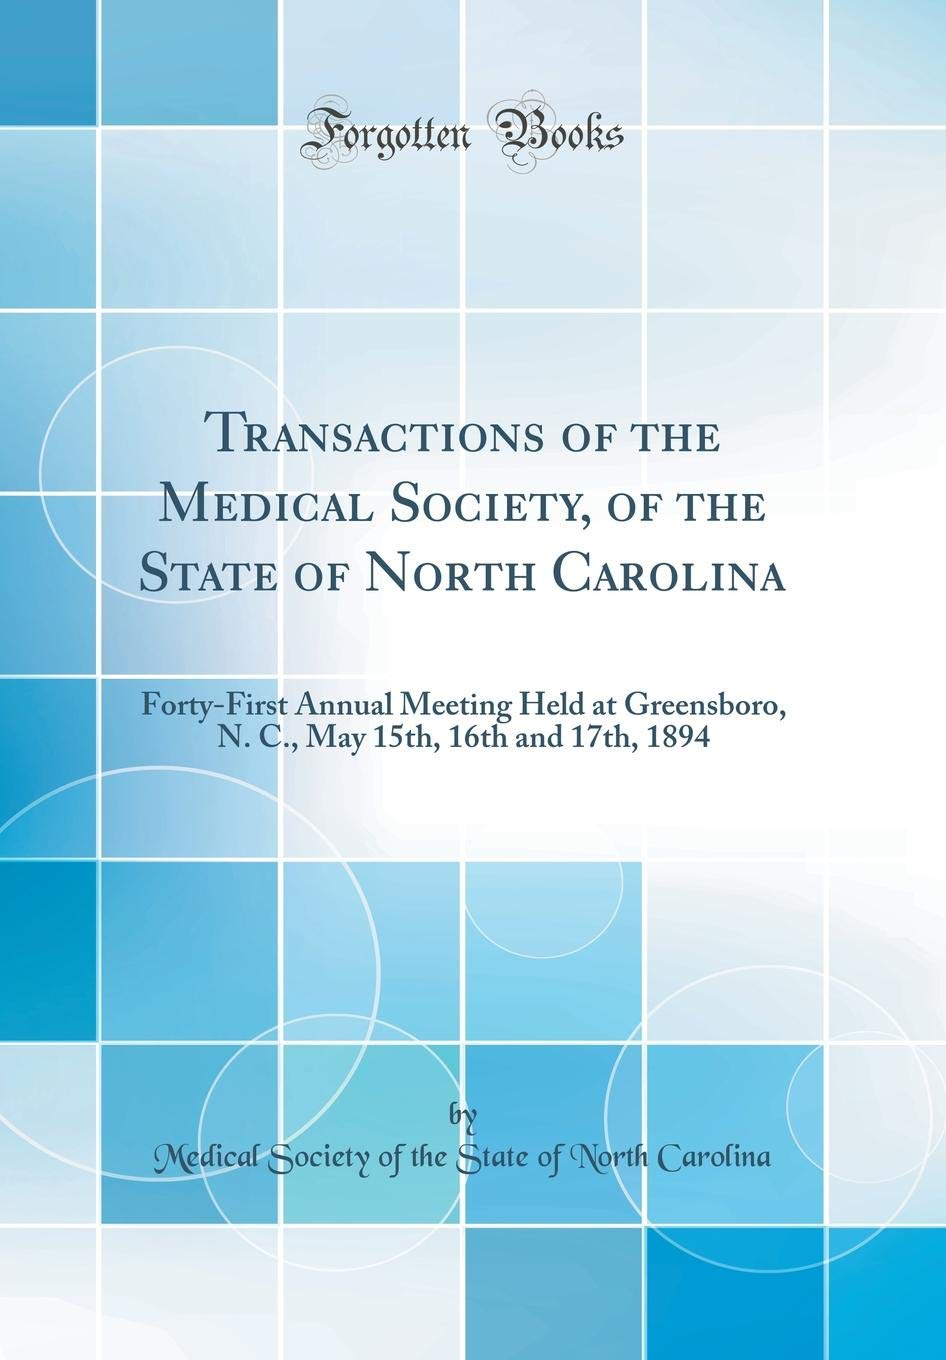 Download Transactions of the Medical Society, of the State of North Carolina: Forty-First Annual Meeting Held at Greensboro, N. C., May 15th, 16th and 17th, 1894 (Classic Reprint) ebook